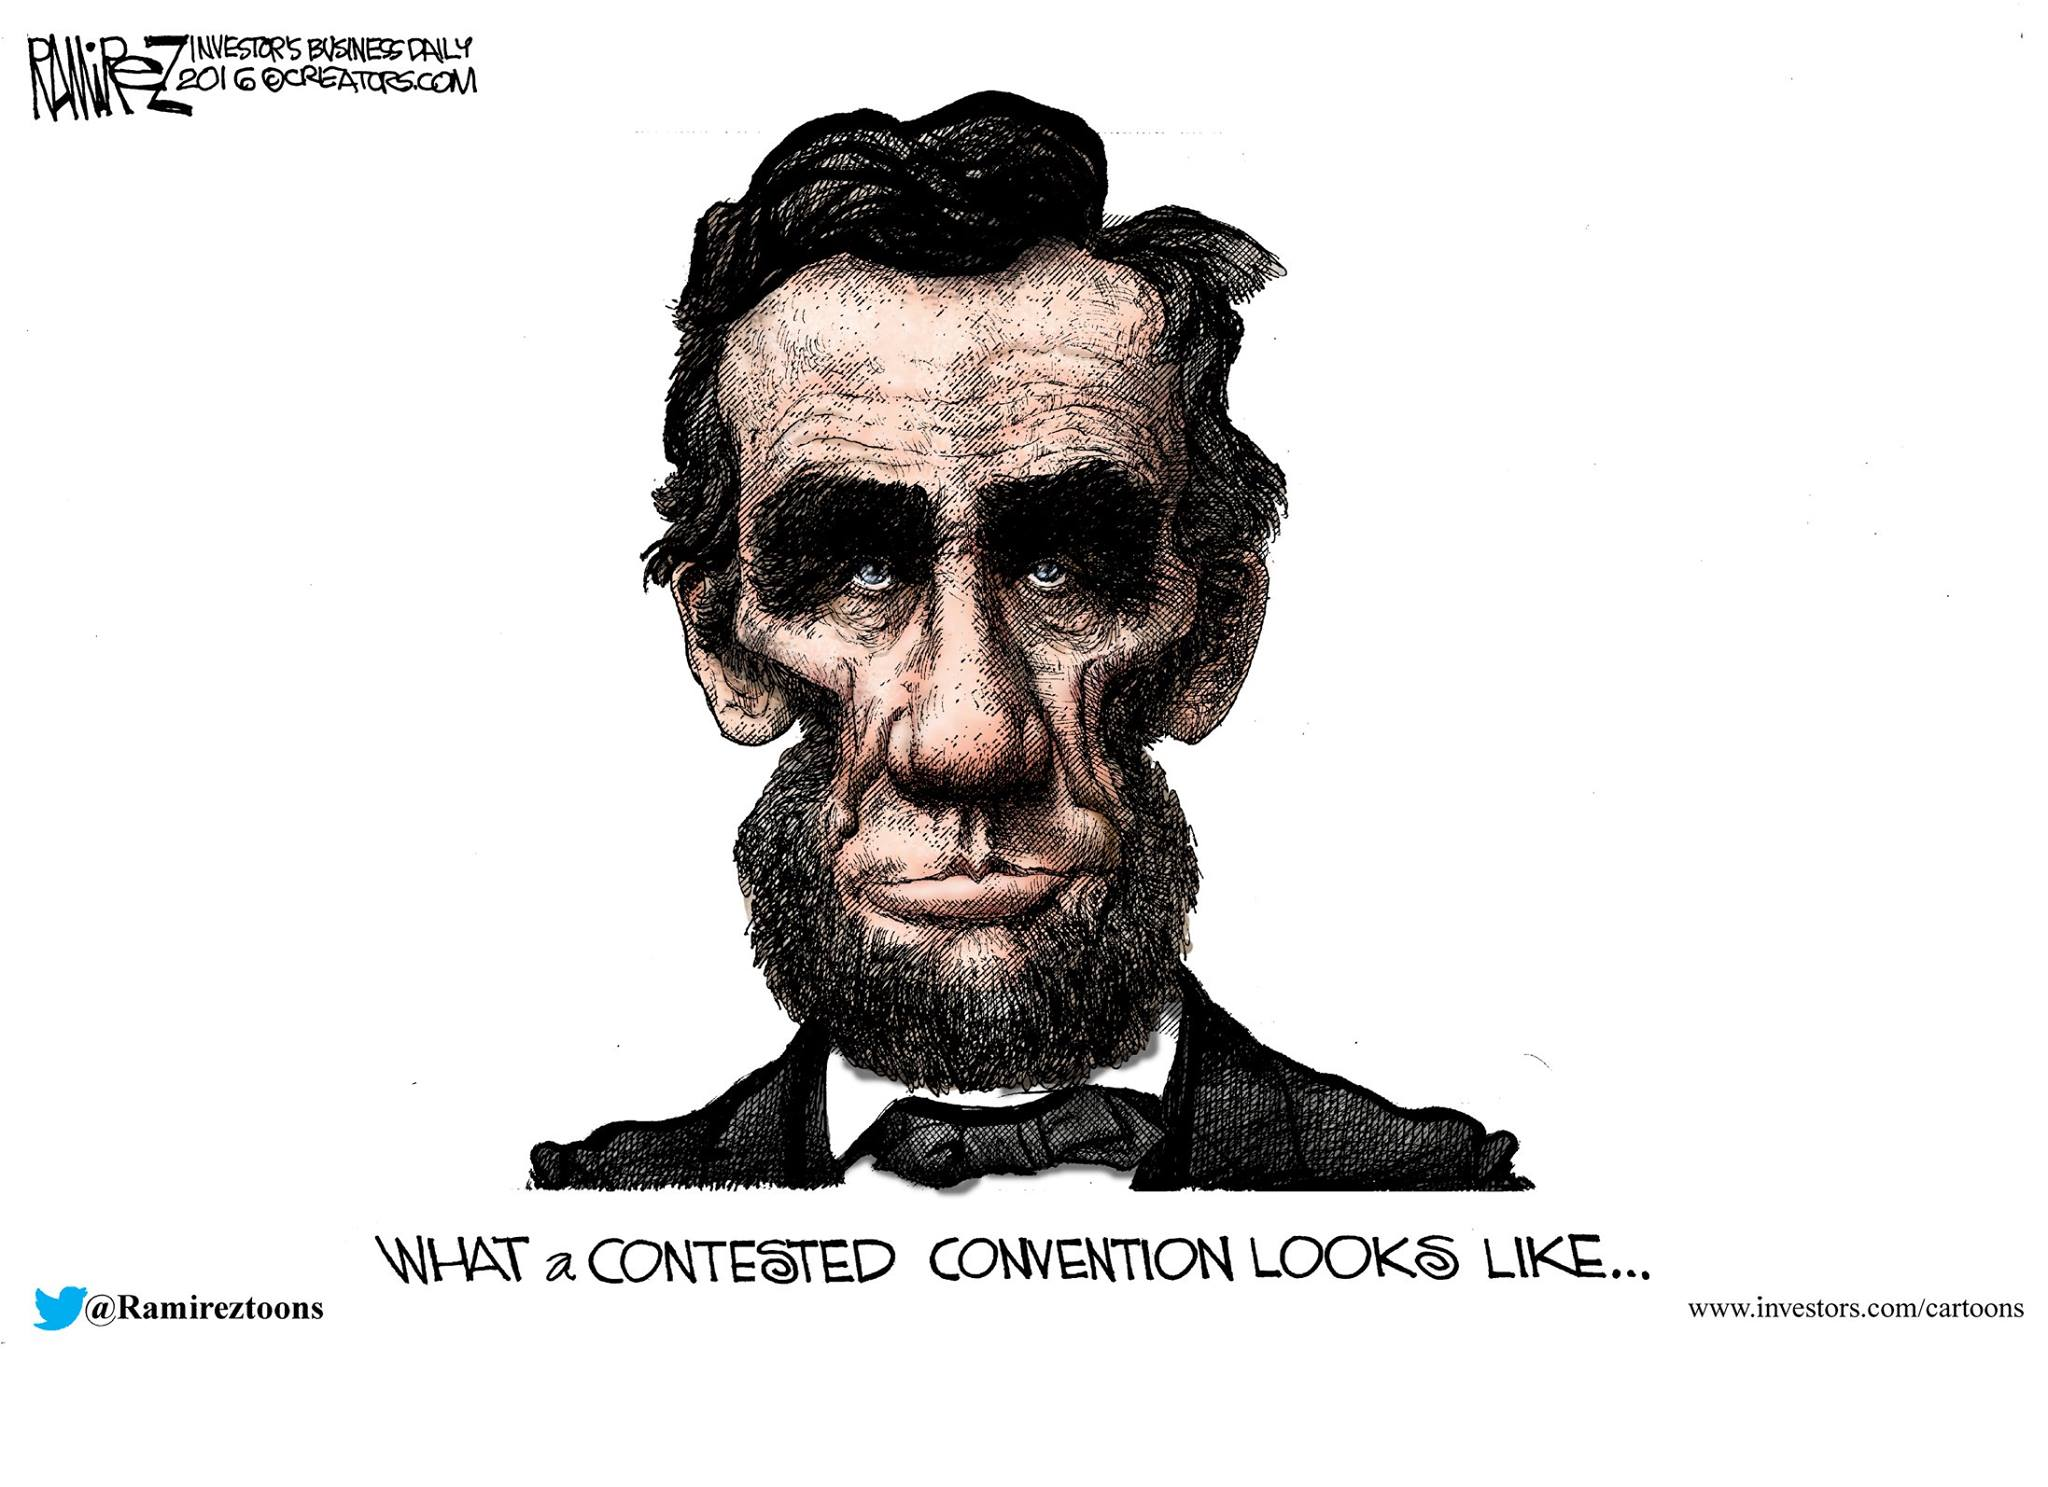 Cruz contested election Lincoln